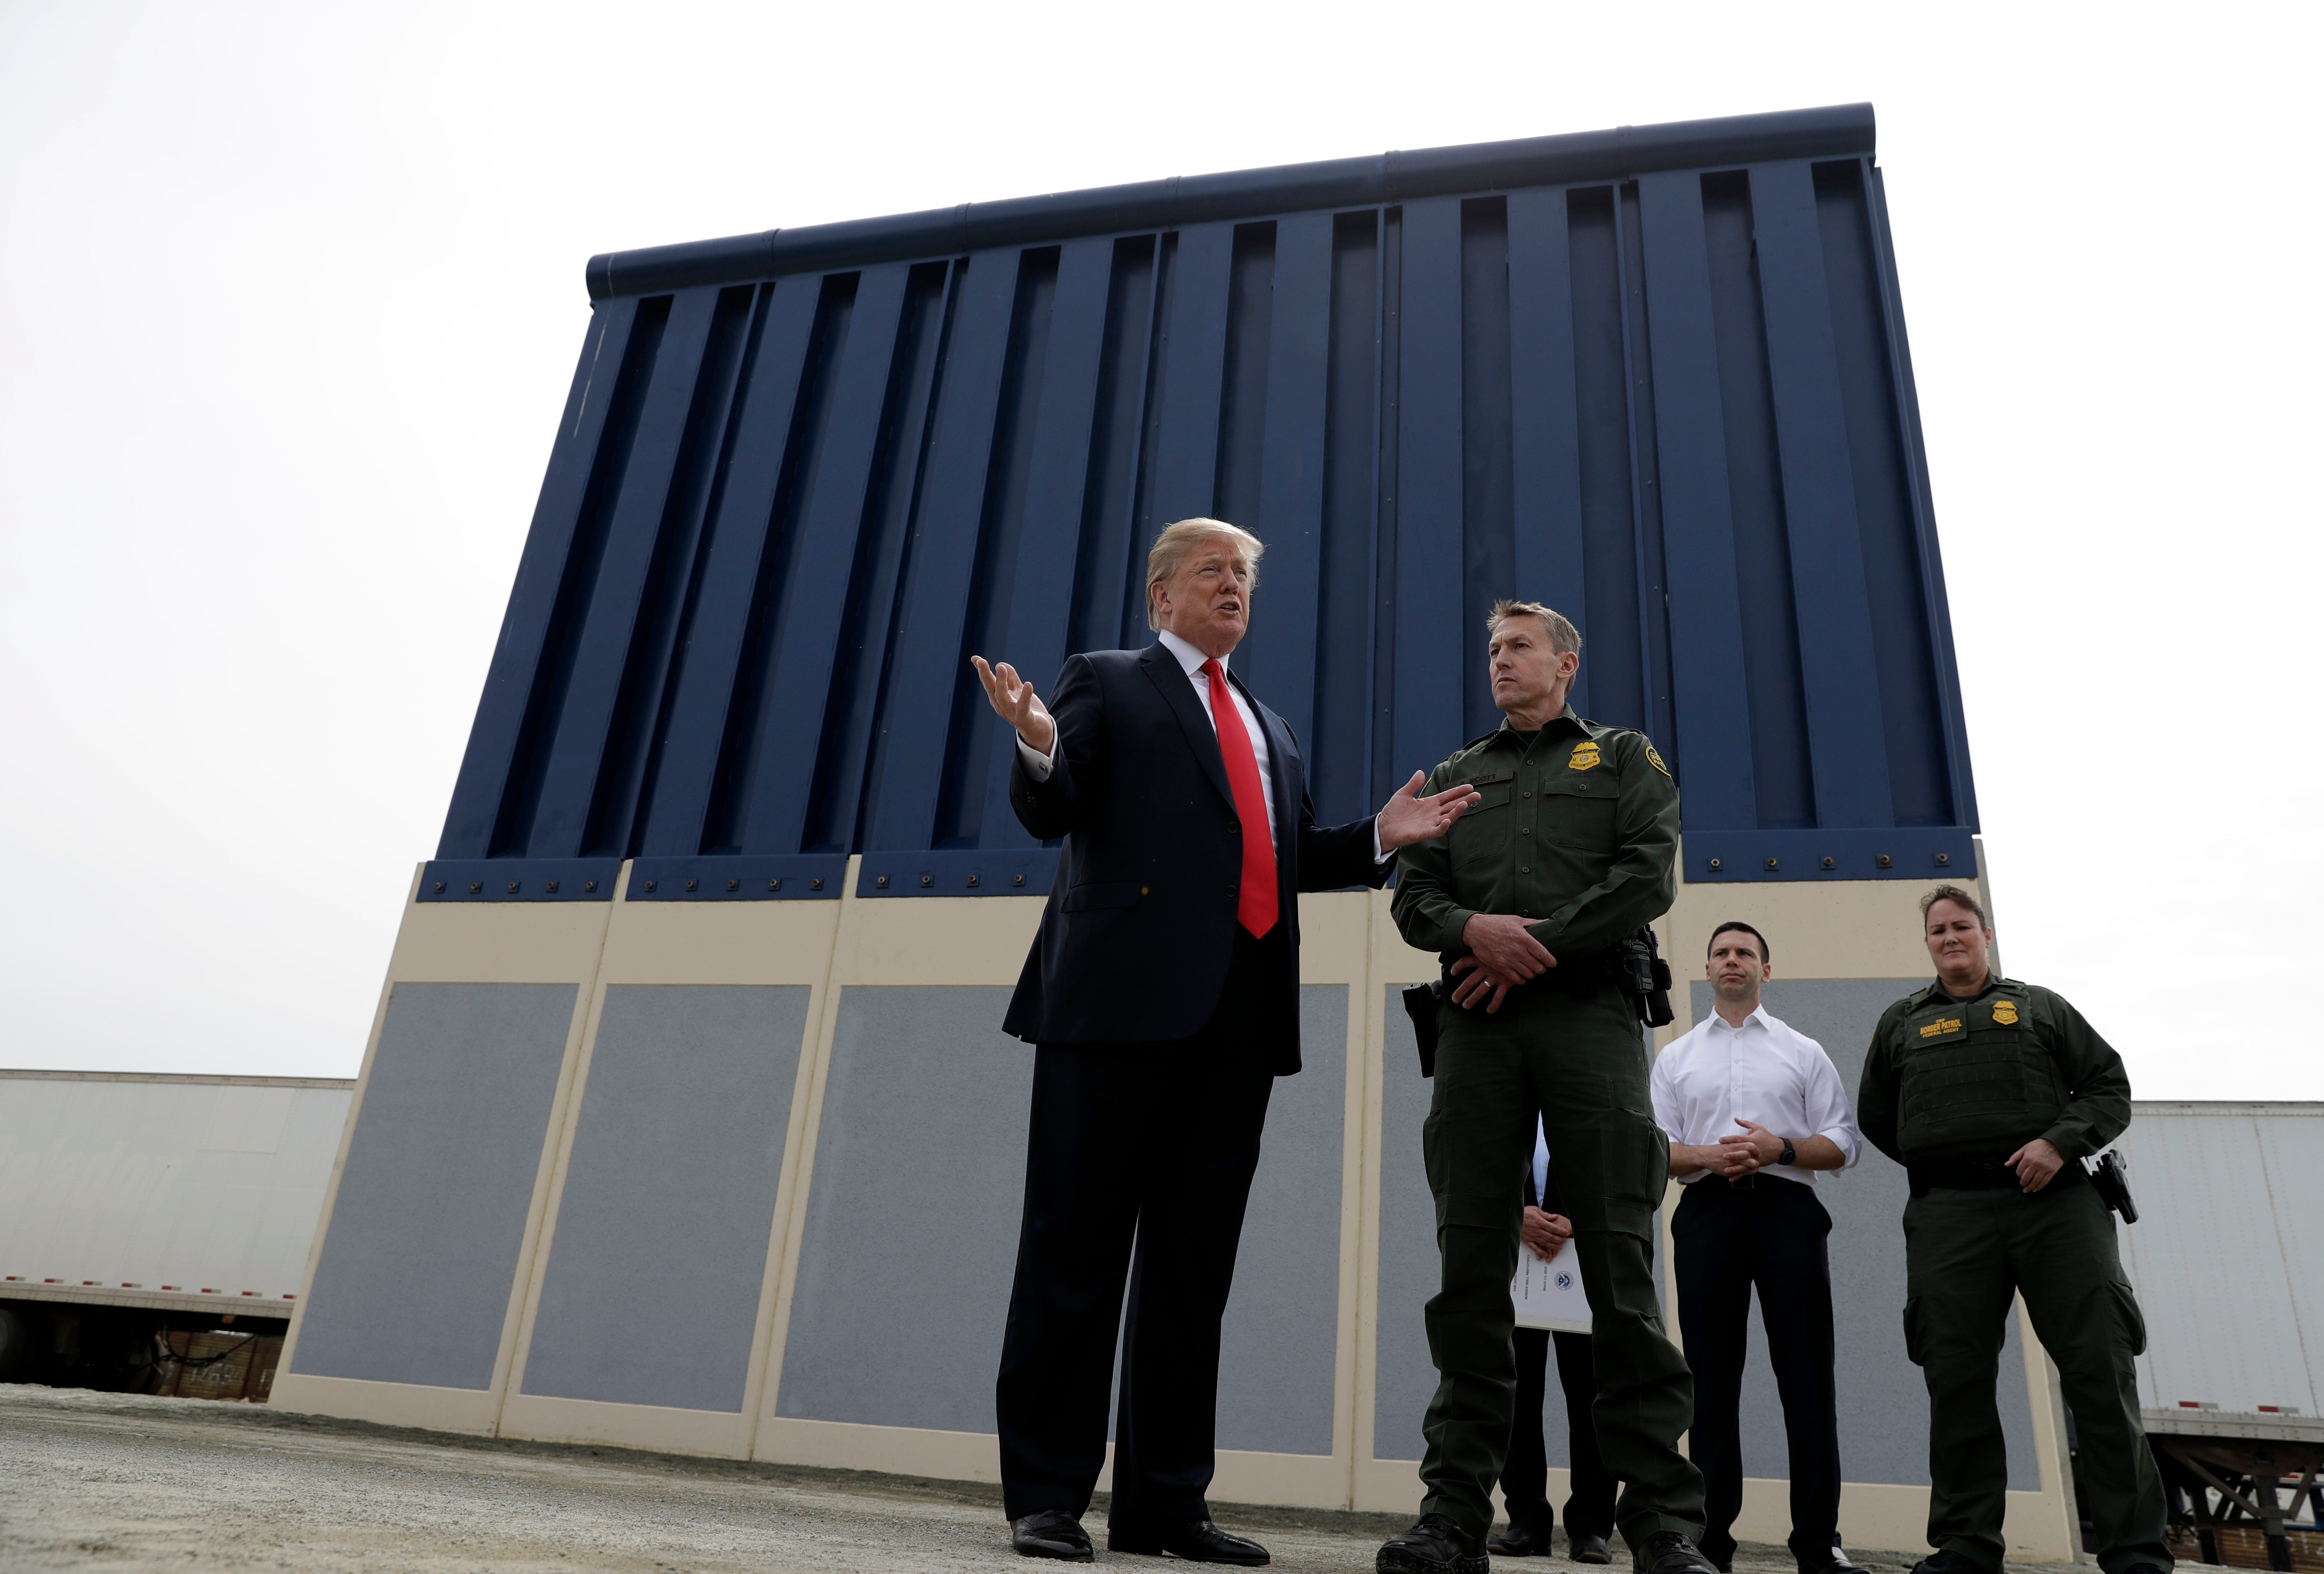 Is Trump's border wall being built? Here are the facts | El Paso Times